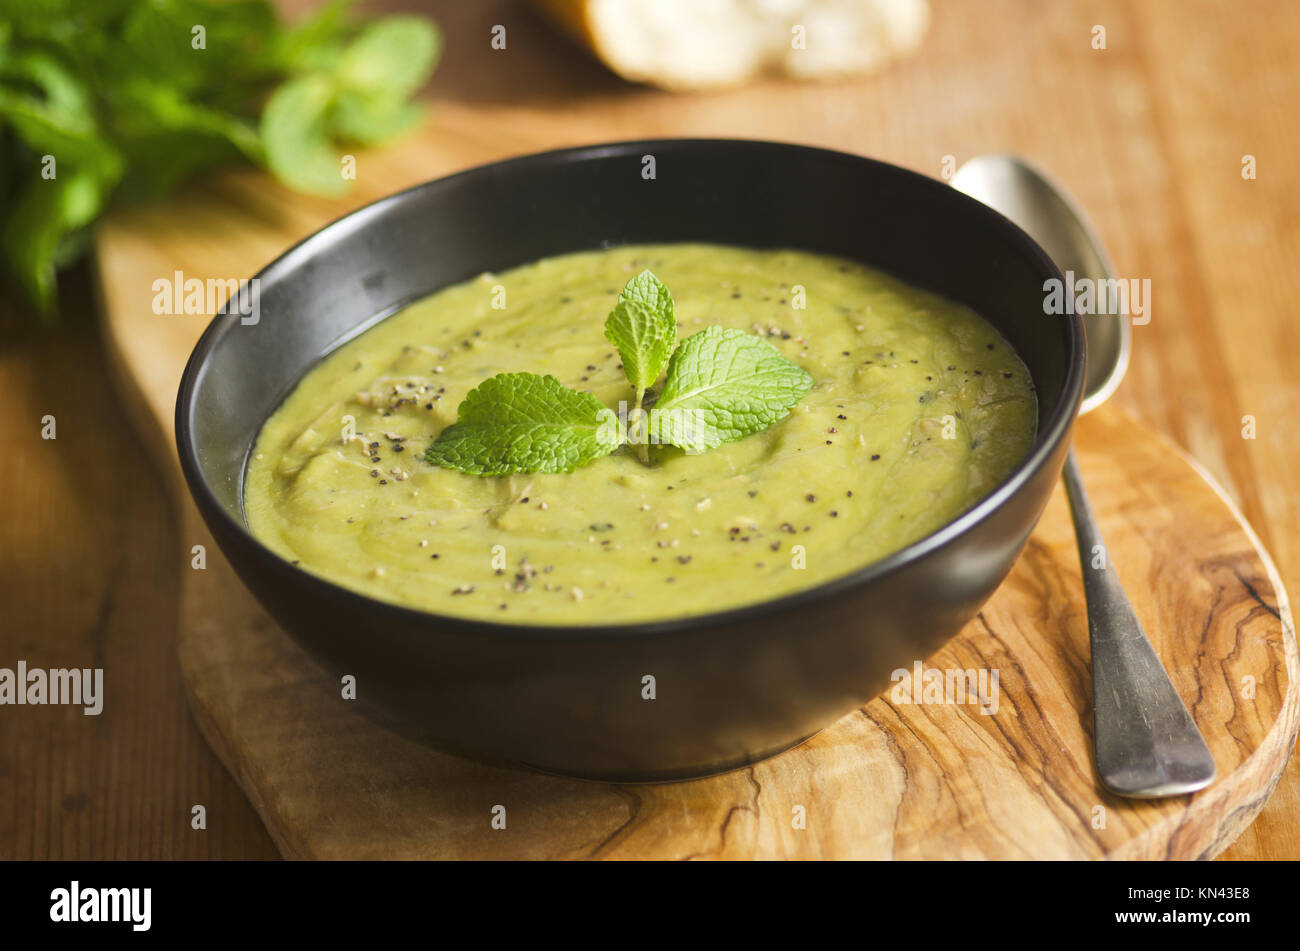 Garden pea and shredded ham soup in a bowl. - Stock Image